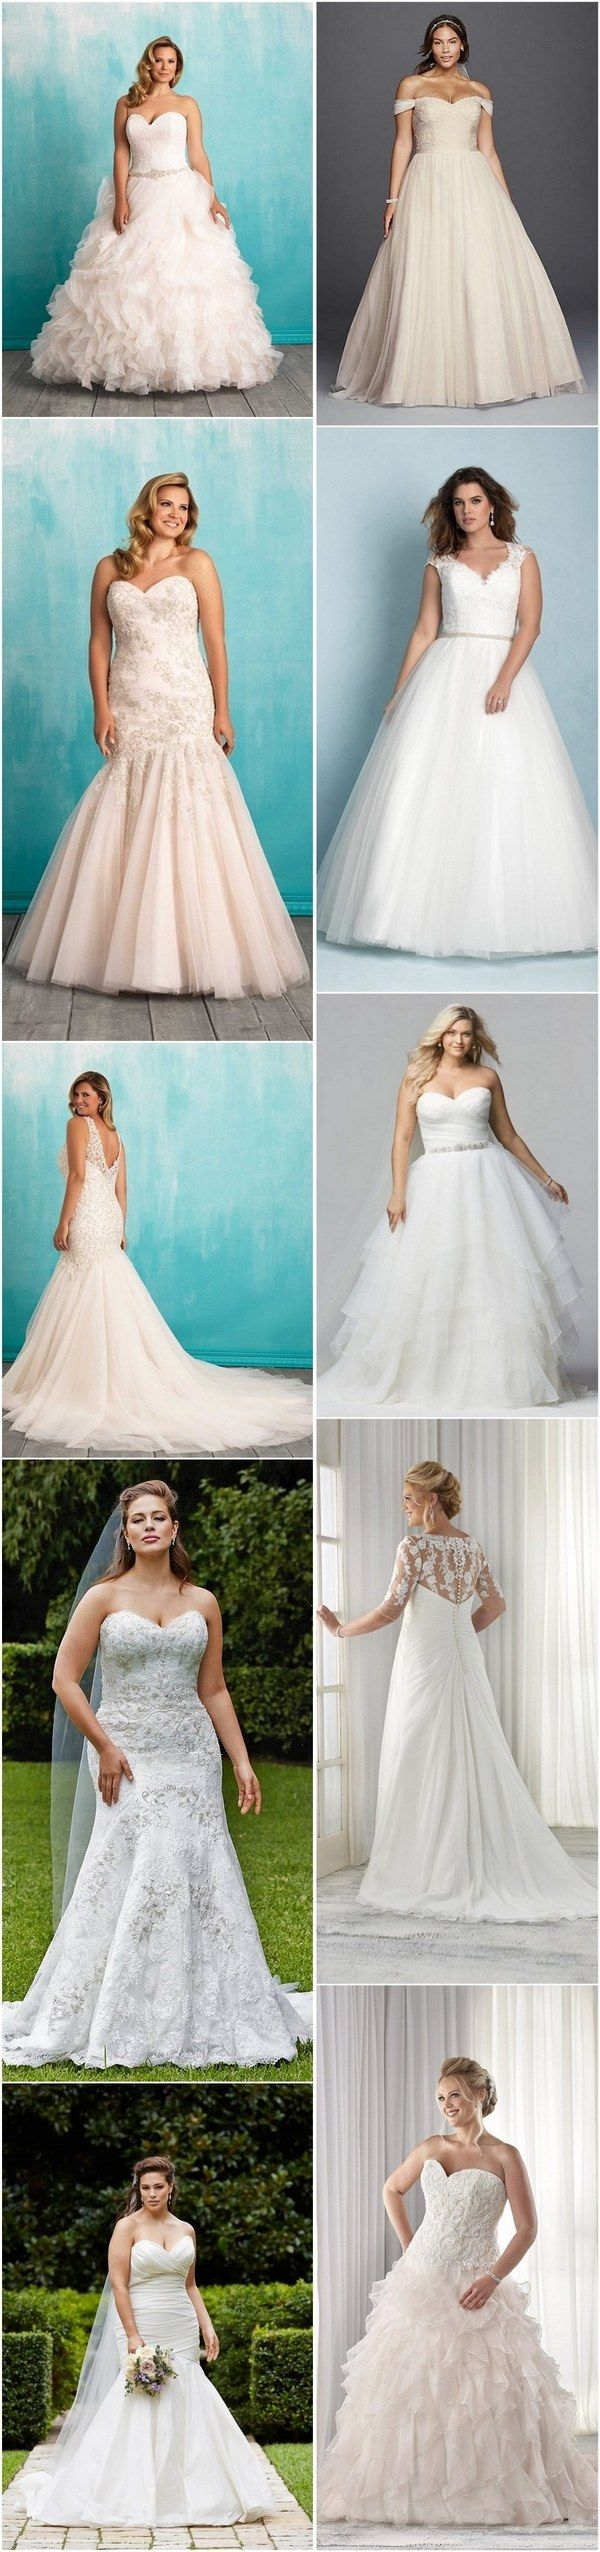 100 Gorgeous Plus-Size Wedding Dresses | Wedding dress, Wedding and ...